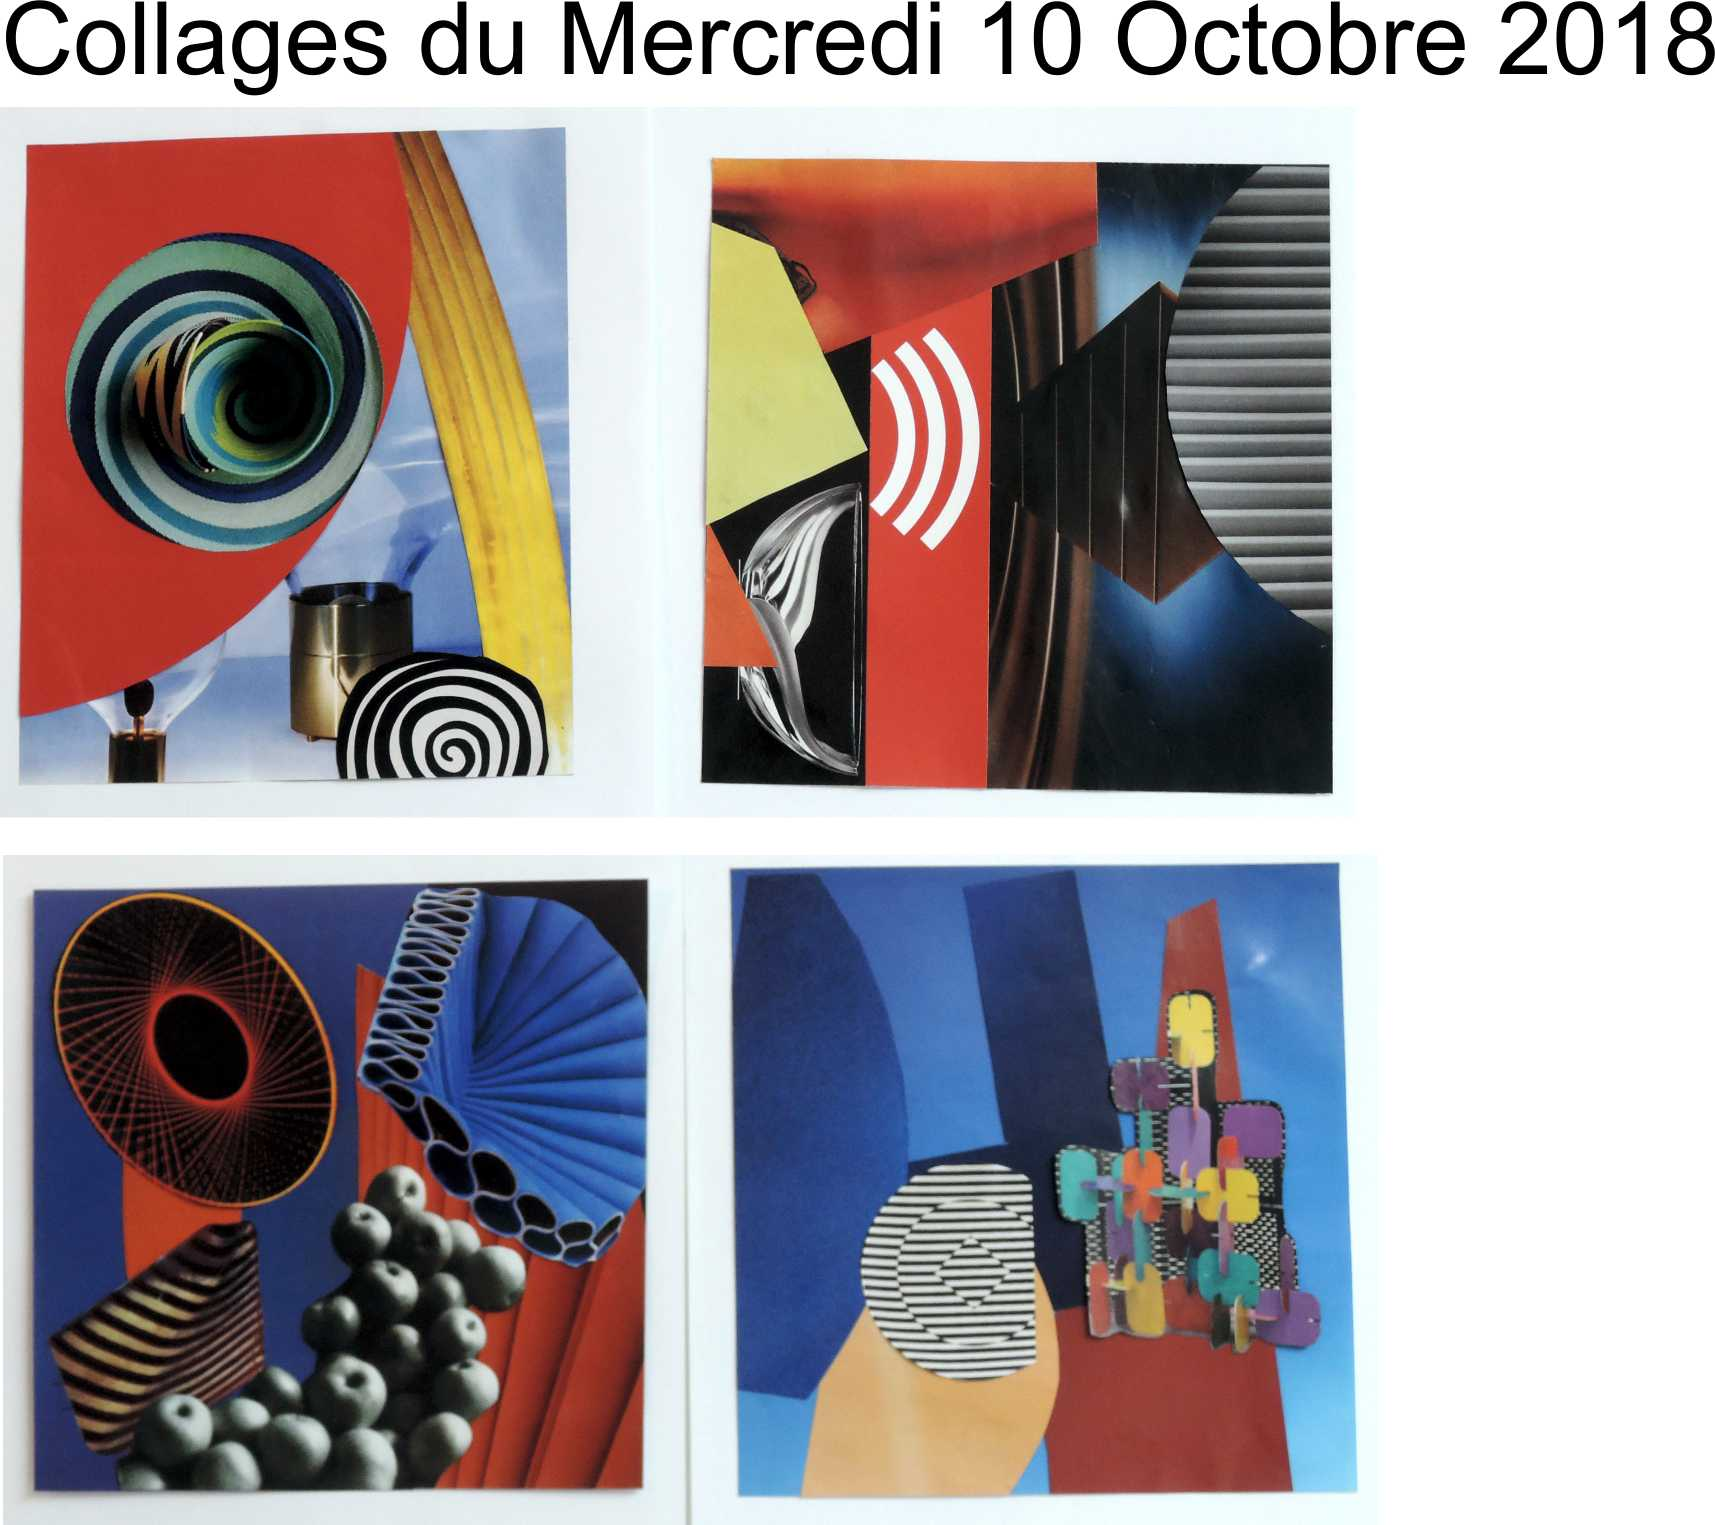 Collages Olivier Kenneybrew mercredi 10 octobre 2018